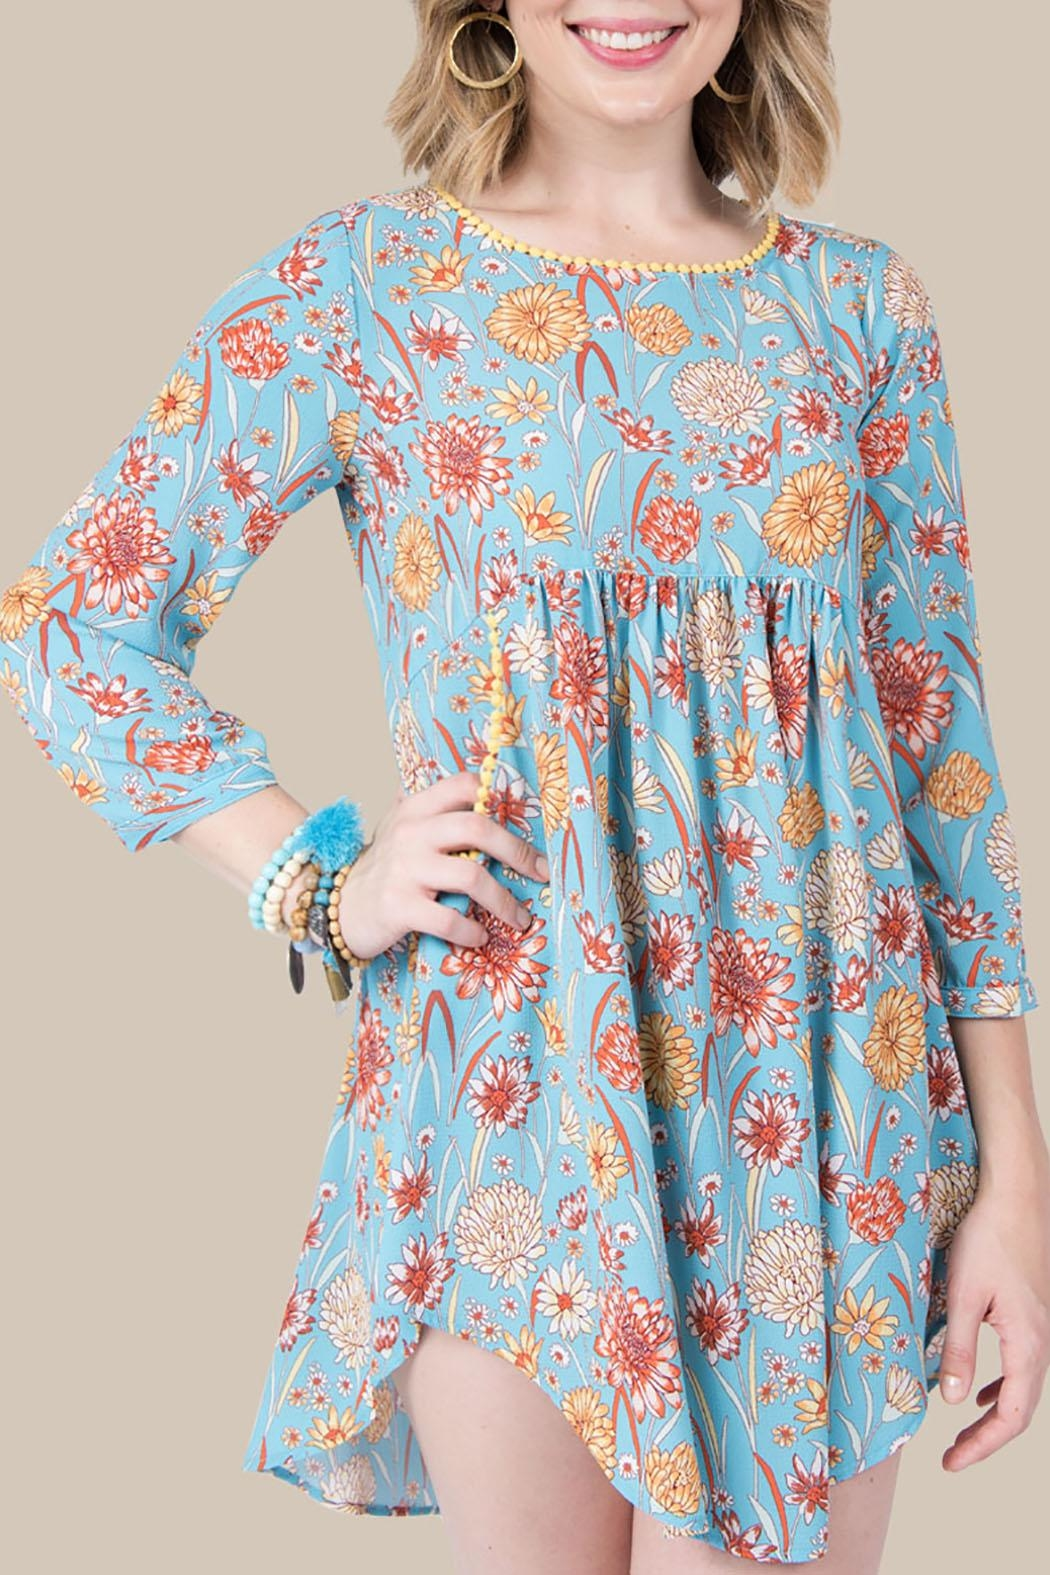 Ivy Jane / Uncle Frank  Blue Floral Tunic - Main Image